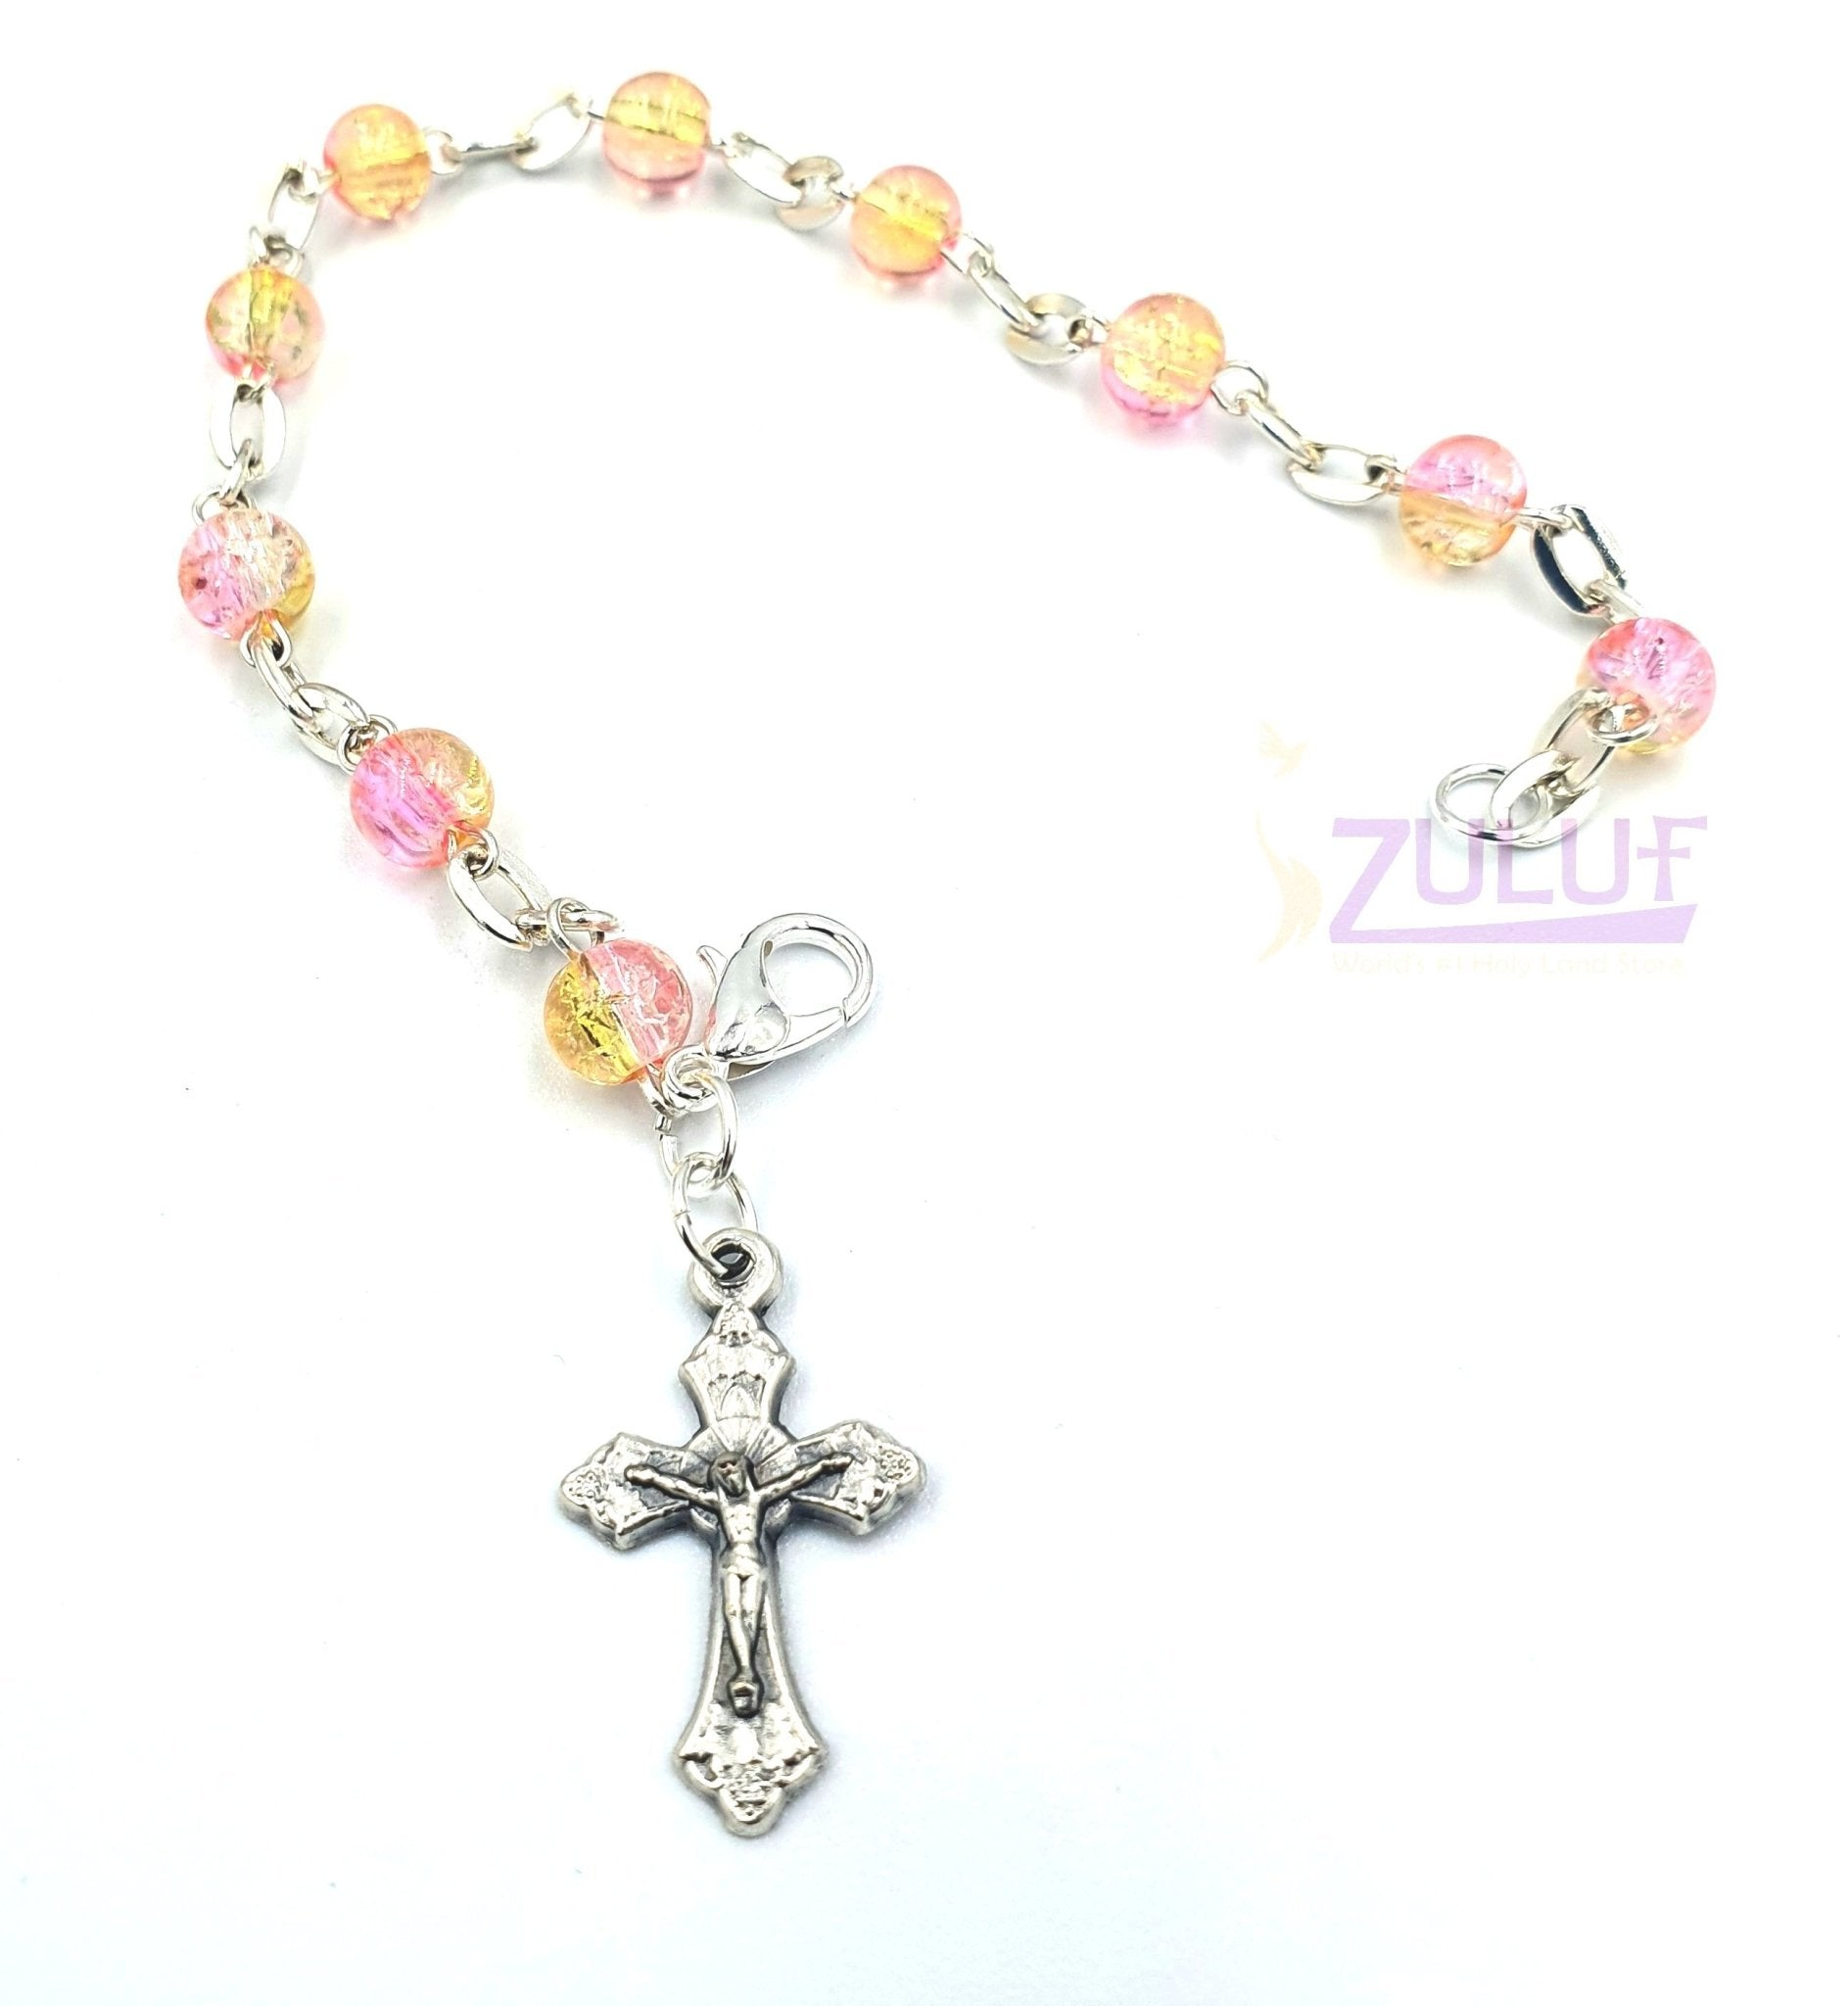 Bright yellow and pink Religious Bracelet Jesus Crucifix Silver Plated Bracelets Religious Jewelry Stores - BRA067 - Zuluf